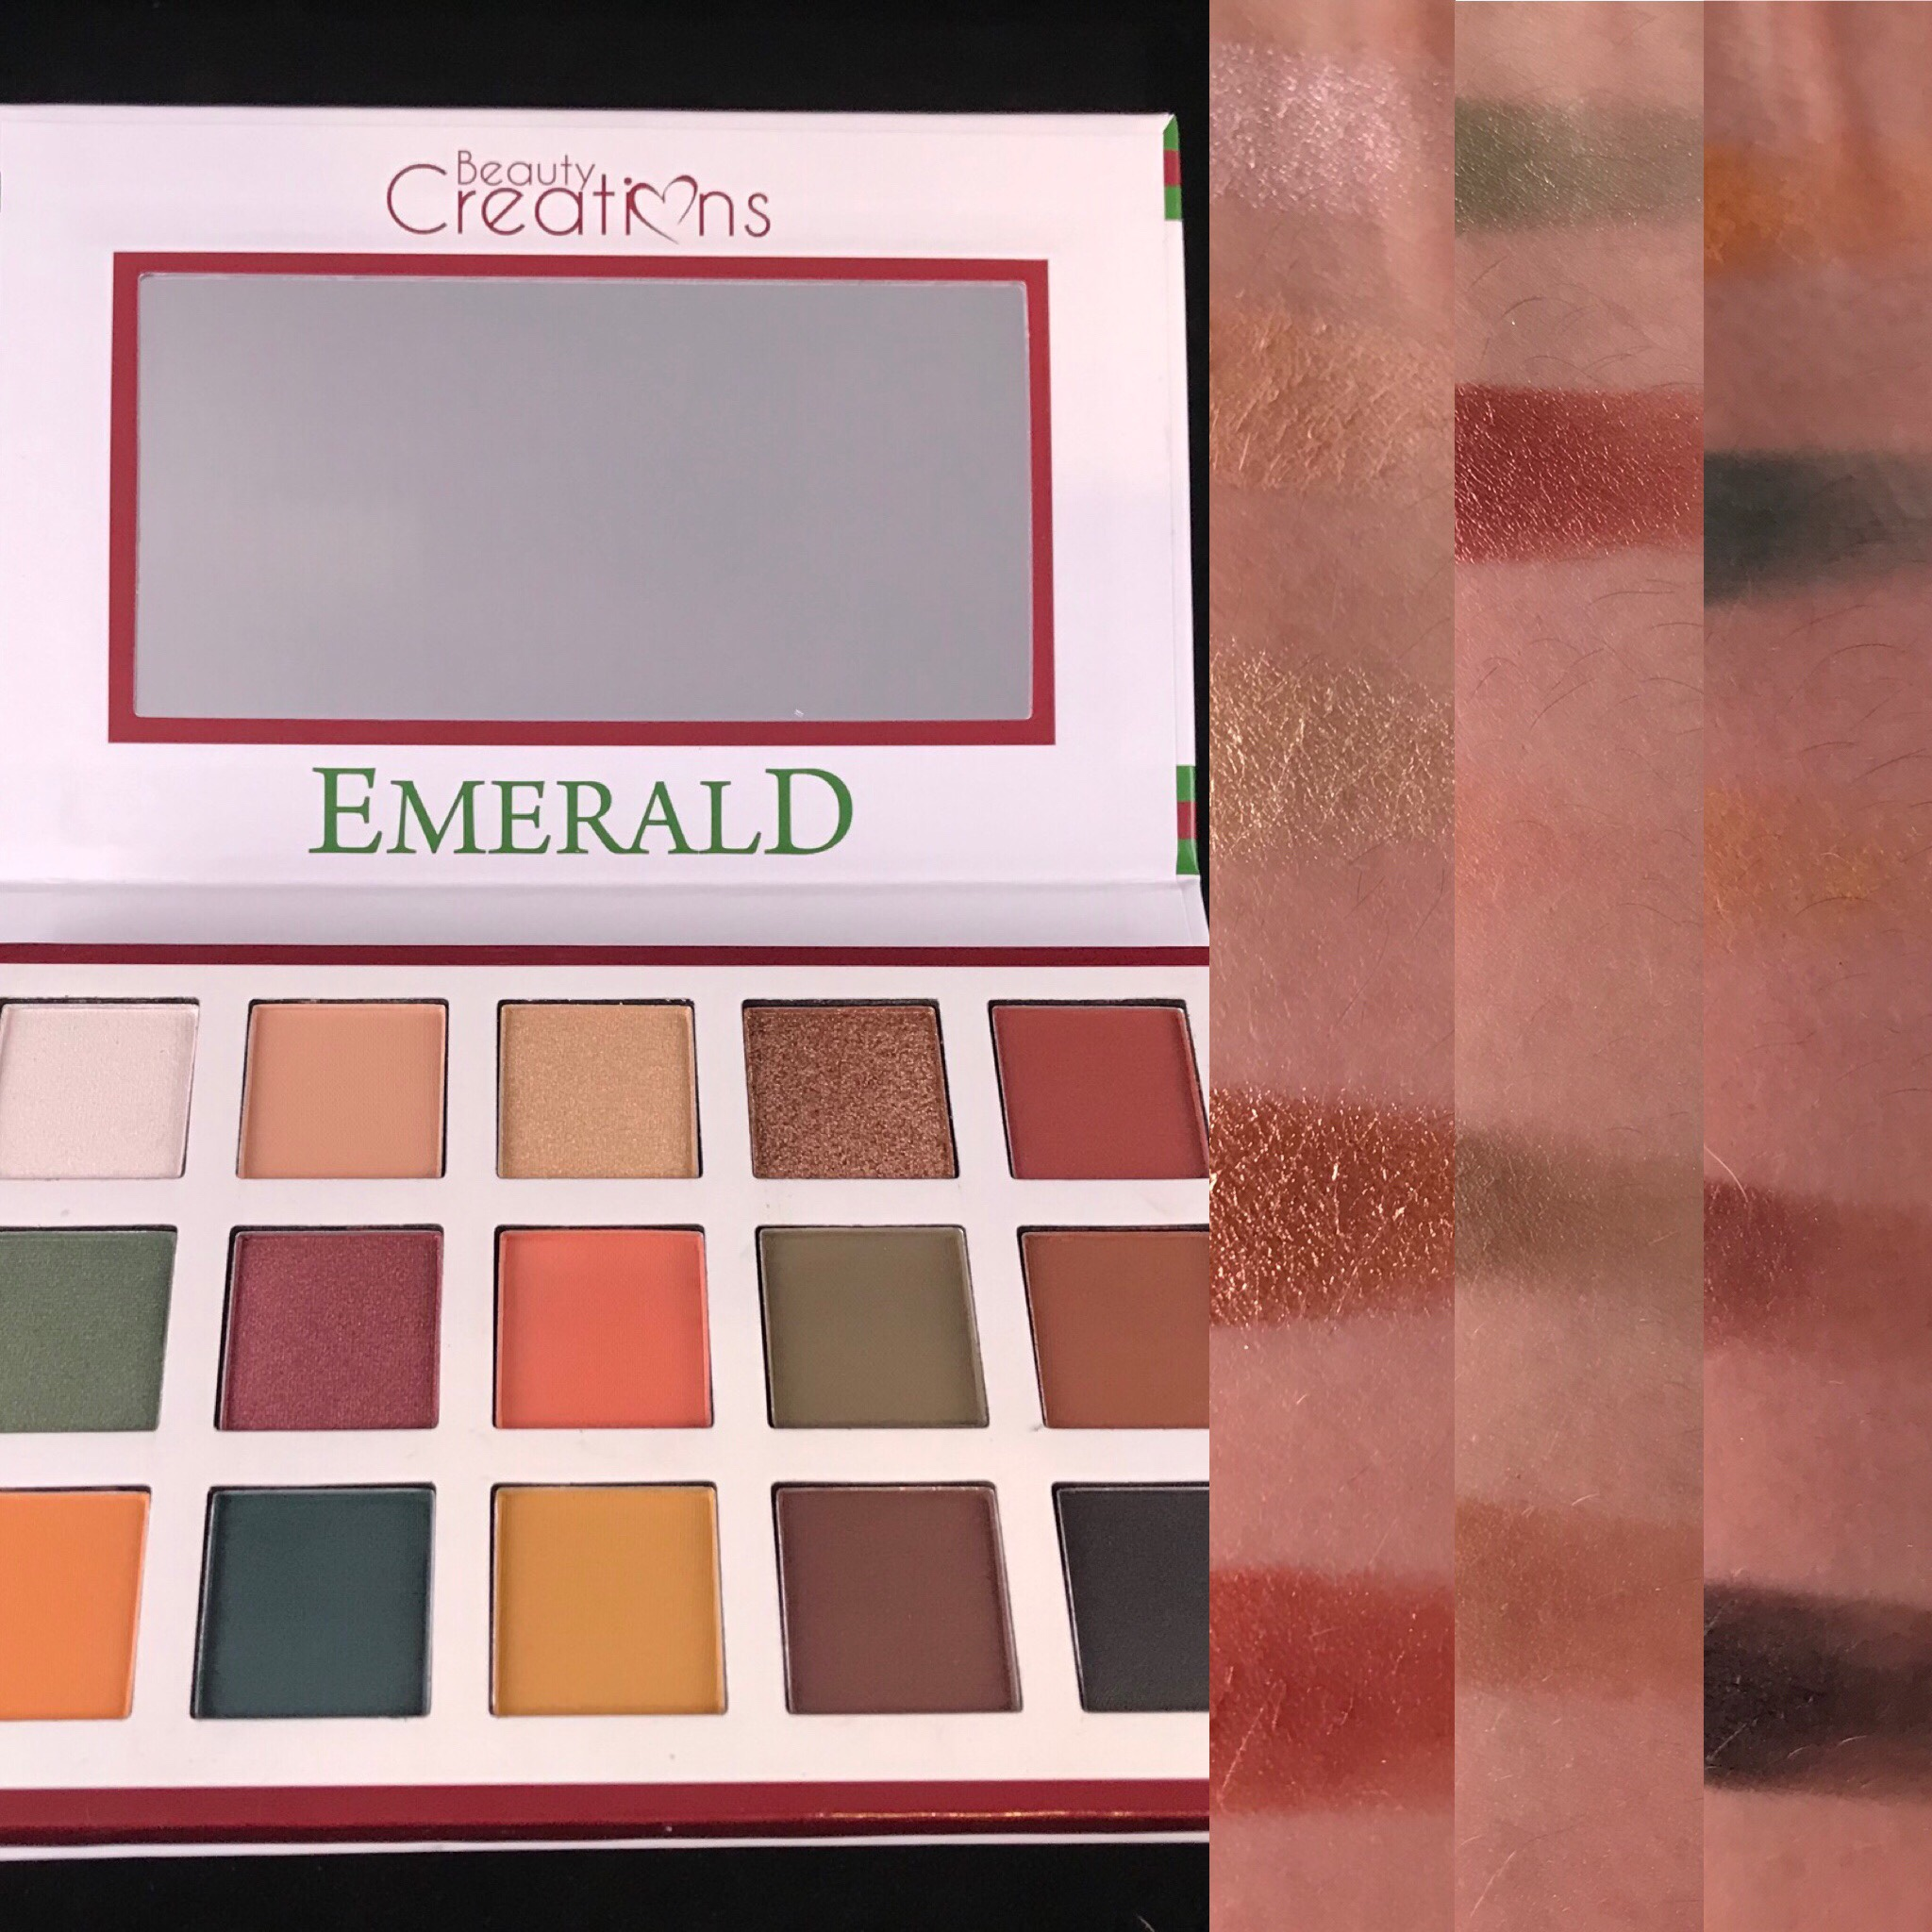 Photo of Emerald Palette from Beauty Creations